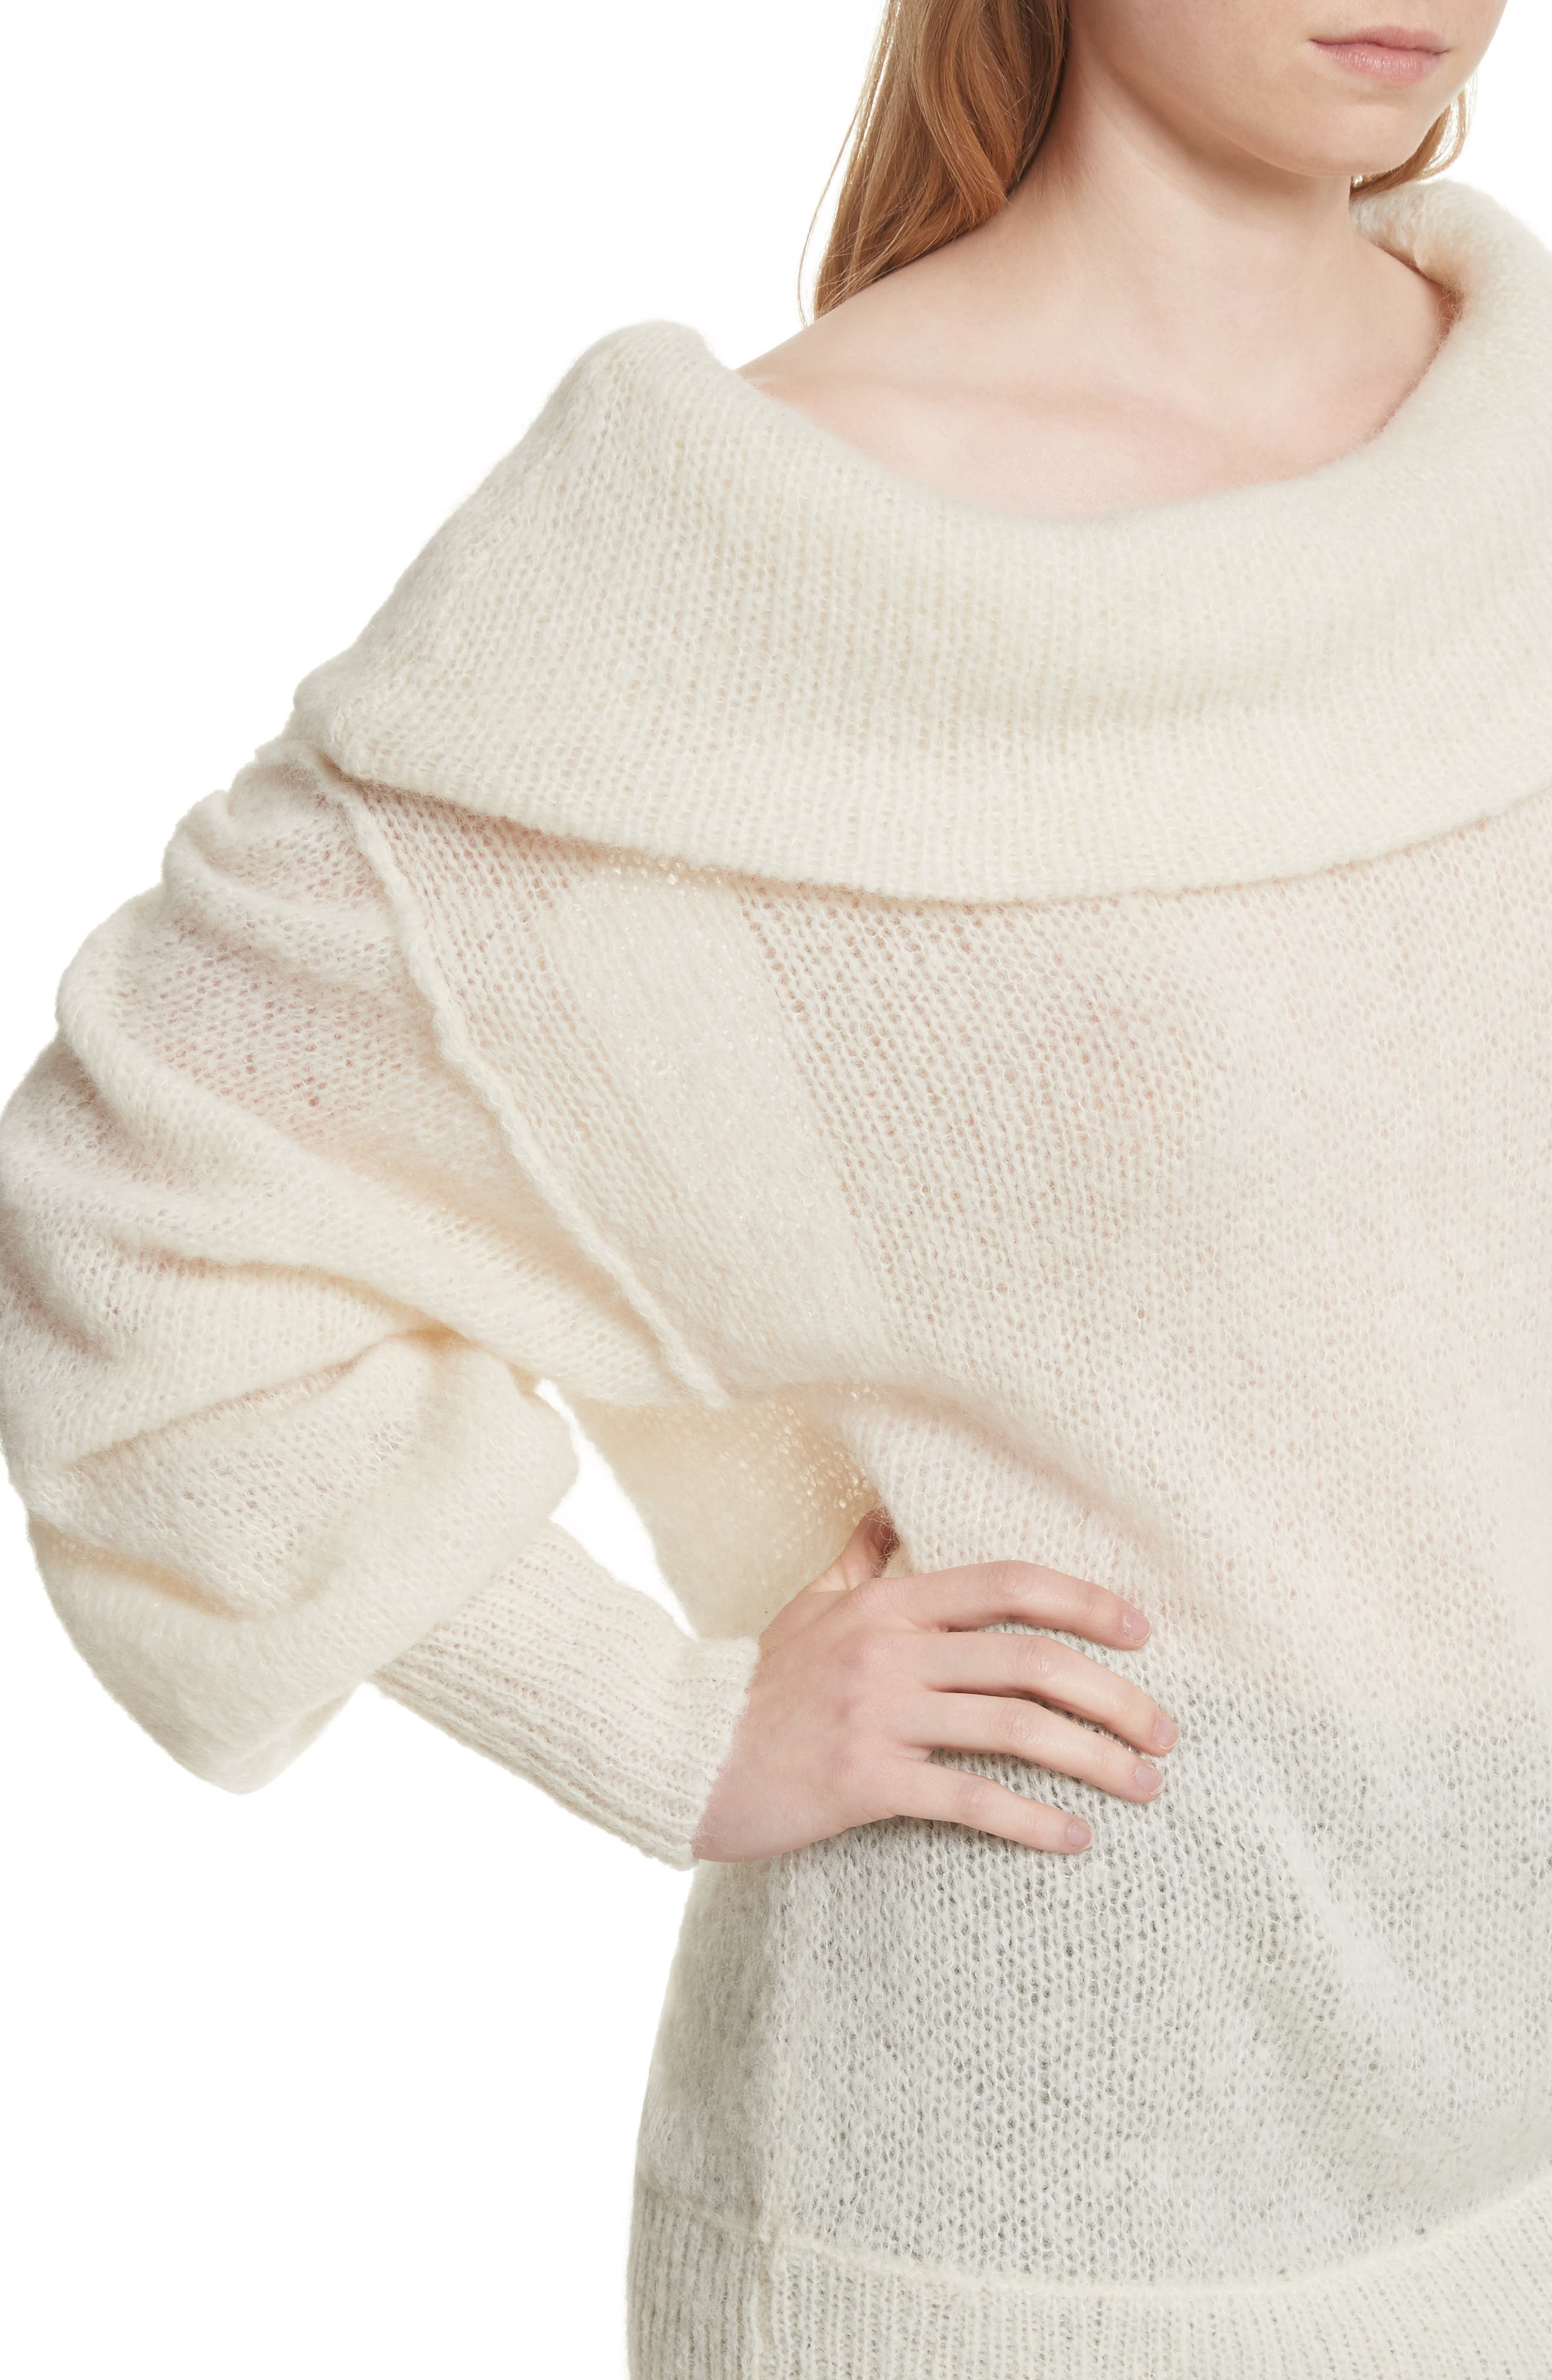 Ophelia Off the Shoulder Sweater,                             Alternate thumbnail 5, color,                             Ivory